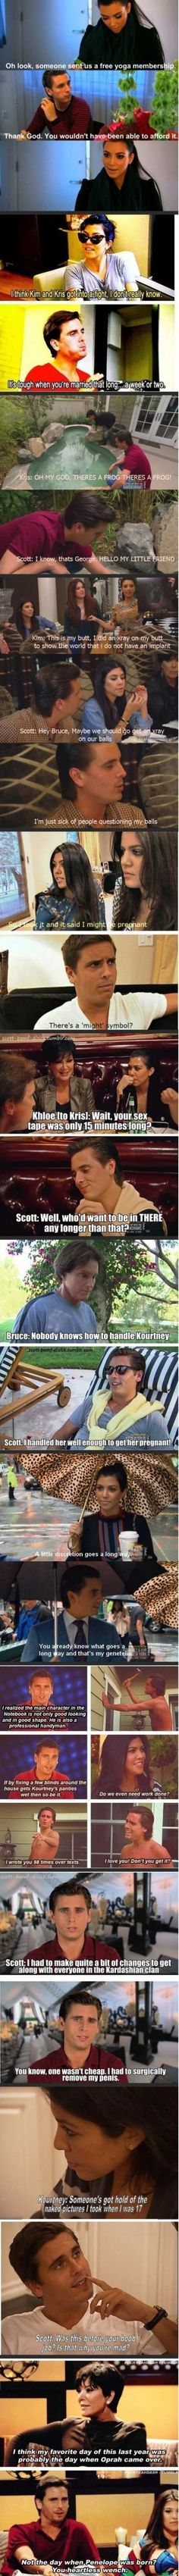 That Scott is a funny guy! #KUWTK